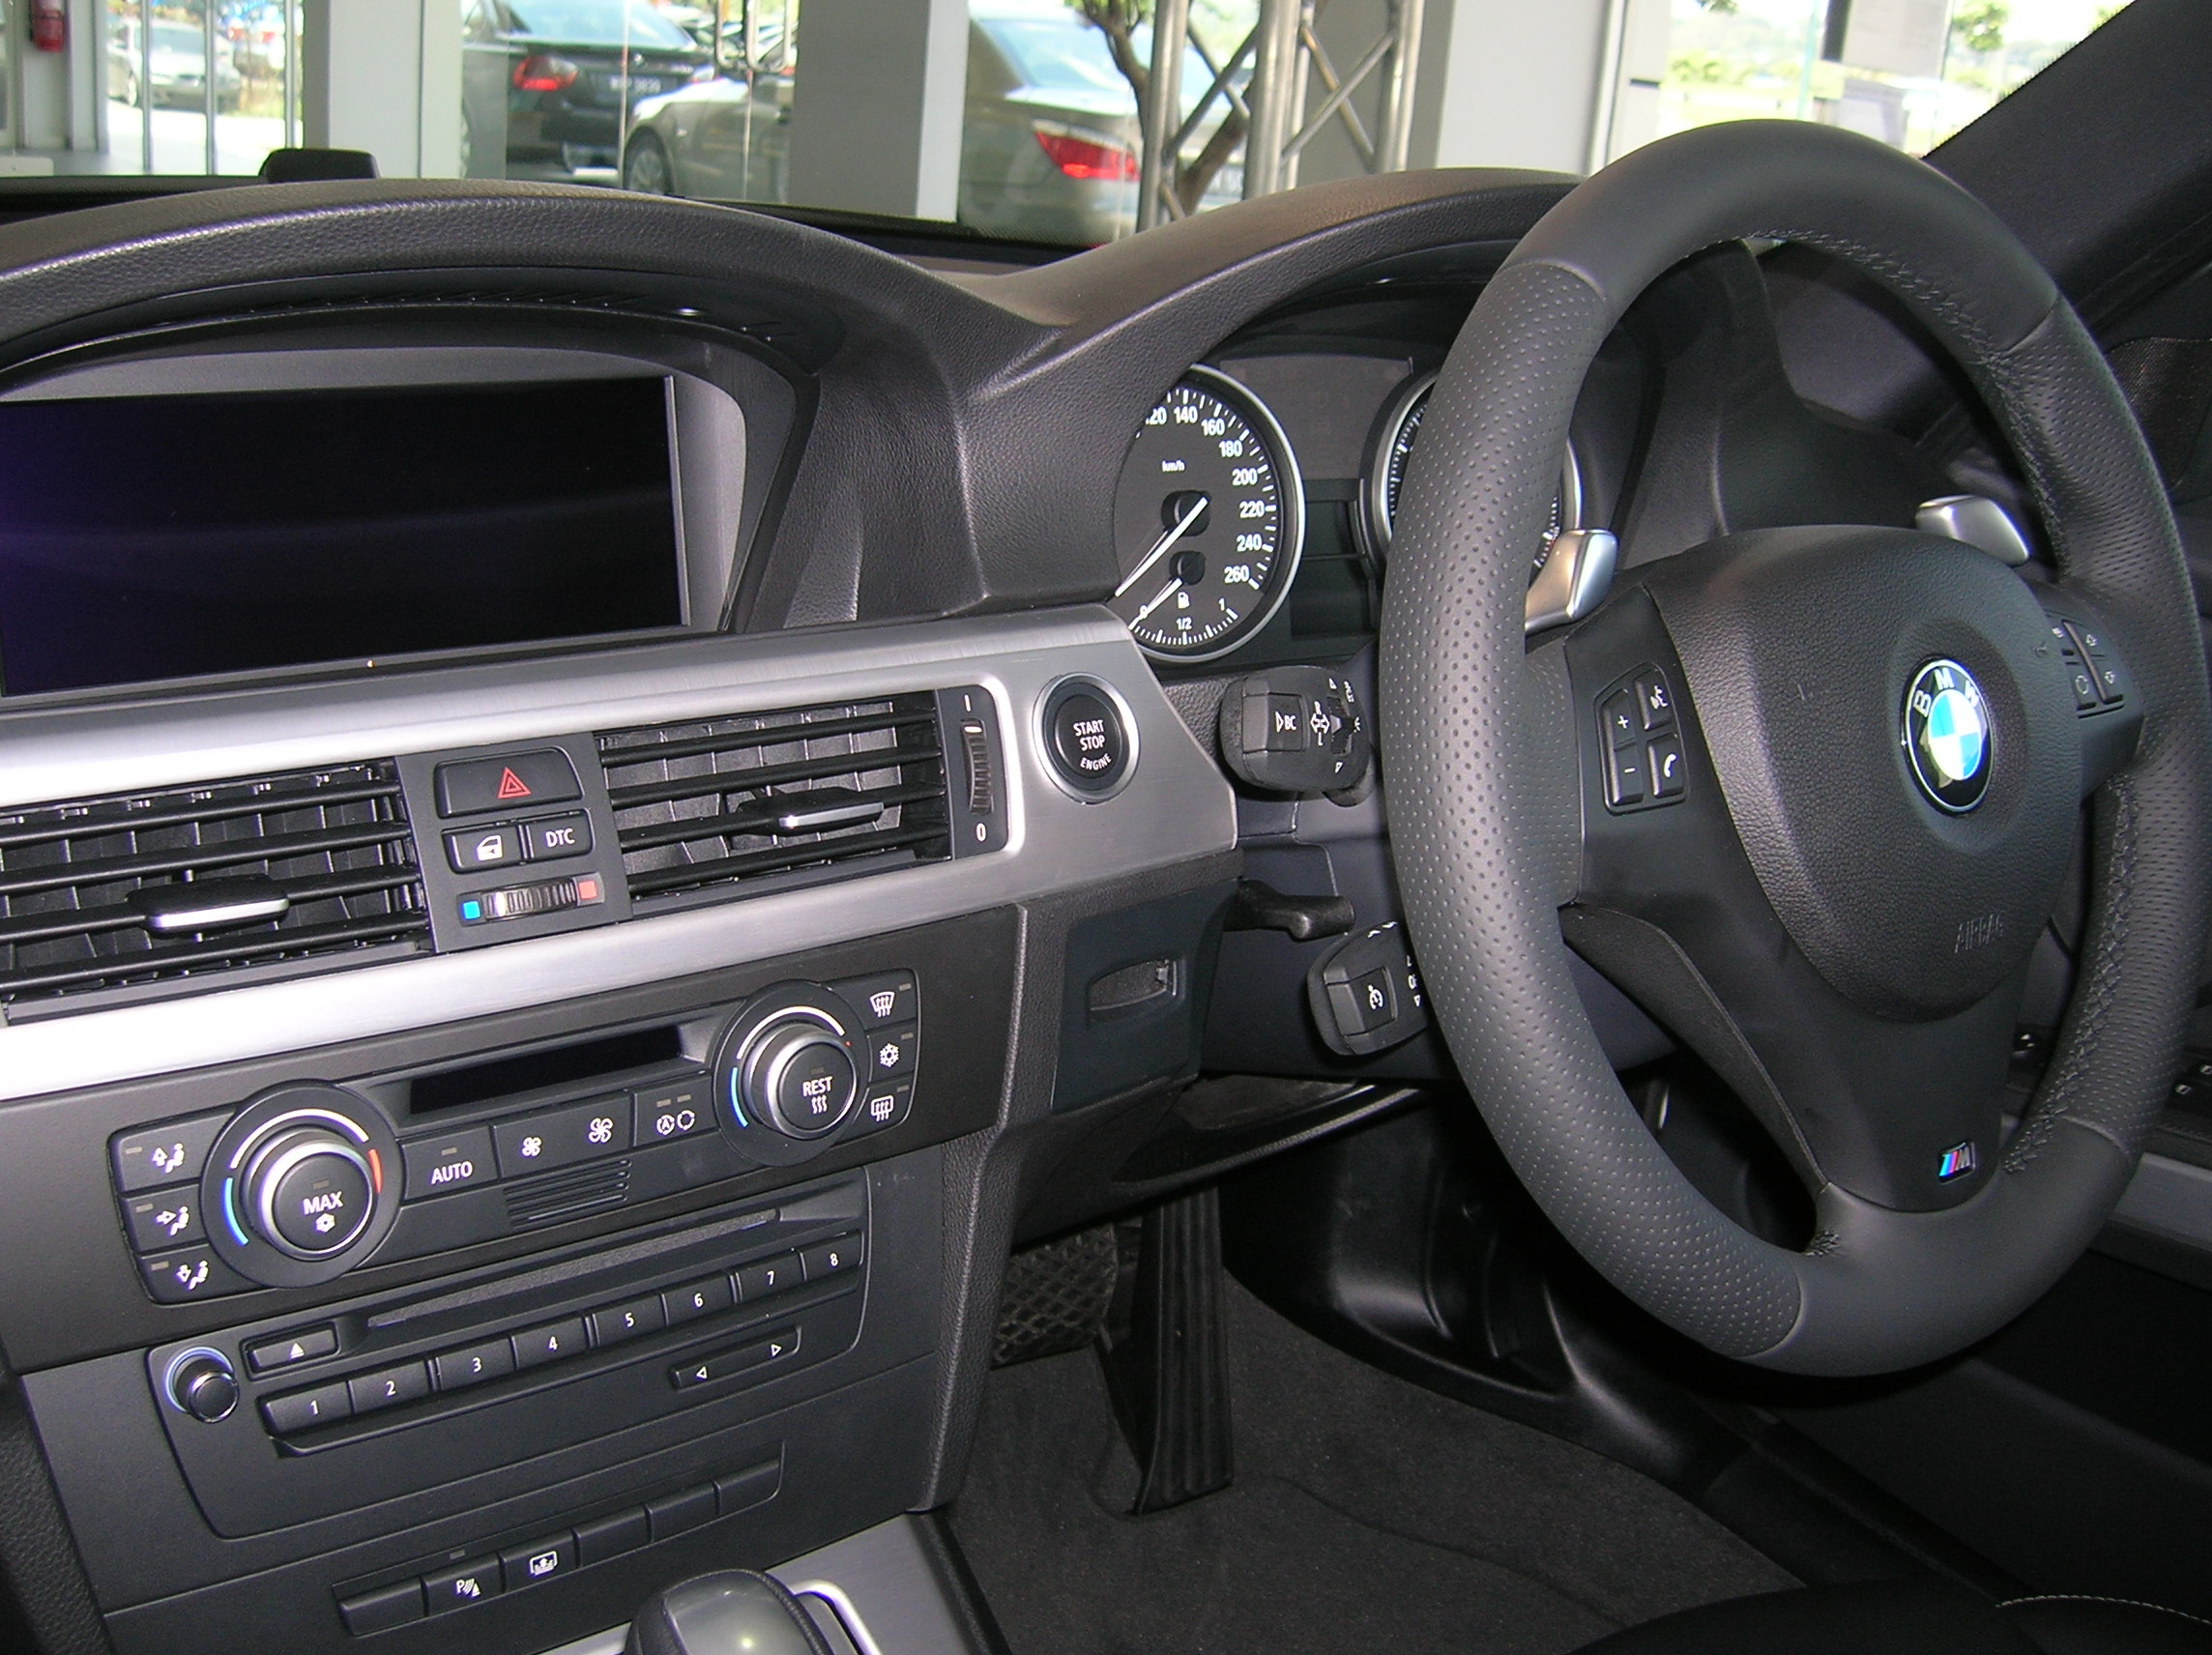 The interior, with M-steering wheel. Paddle-shift controls override for 6-speed Steptronic.